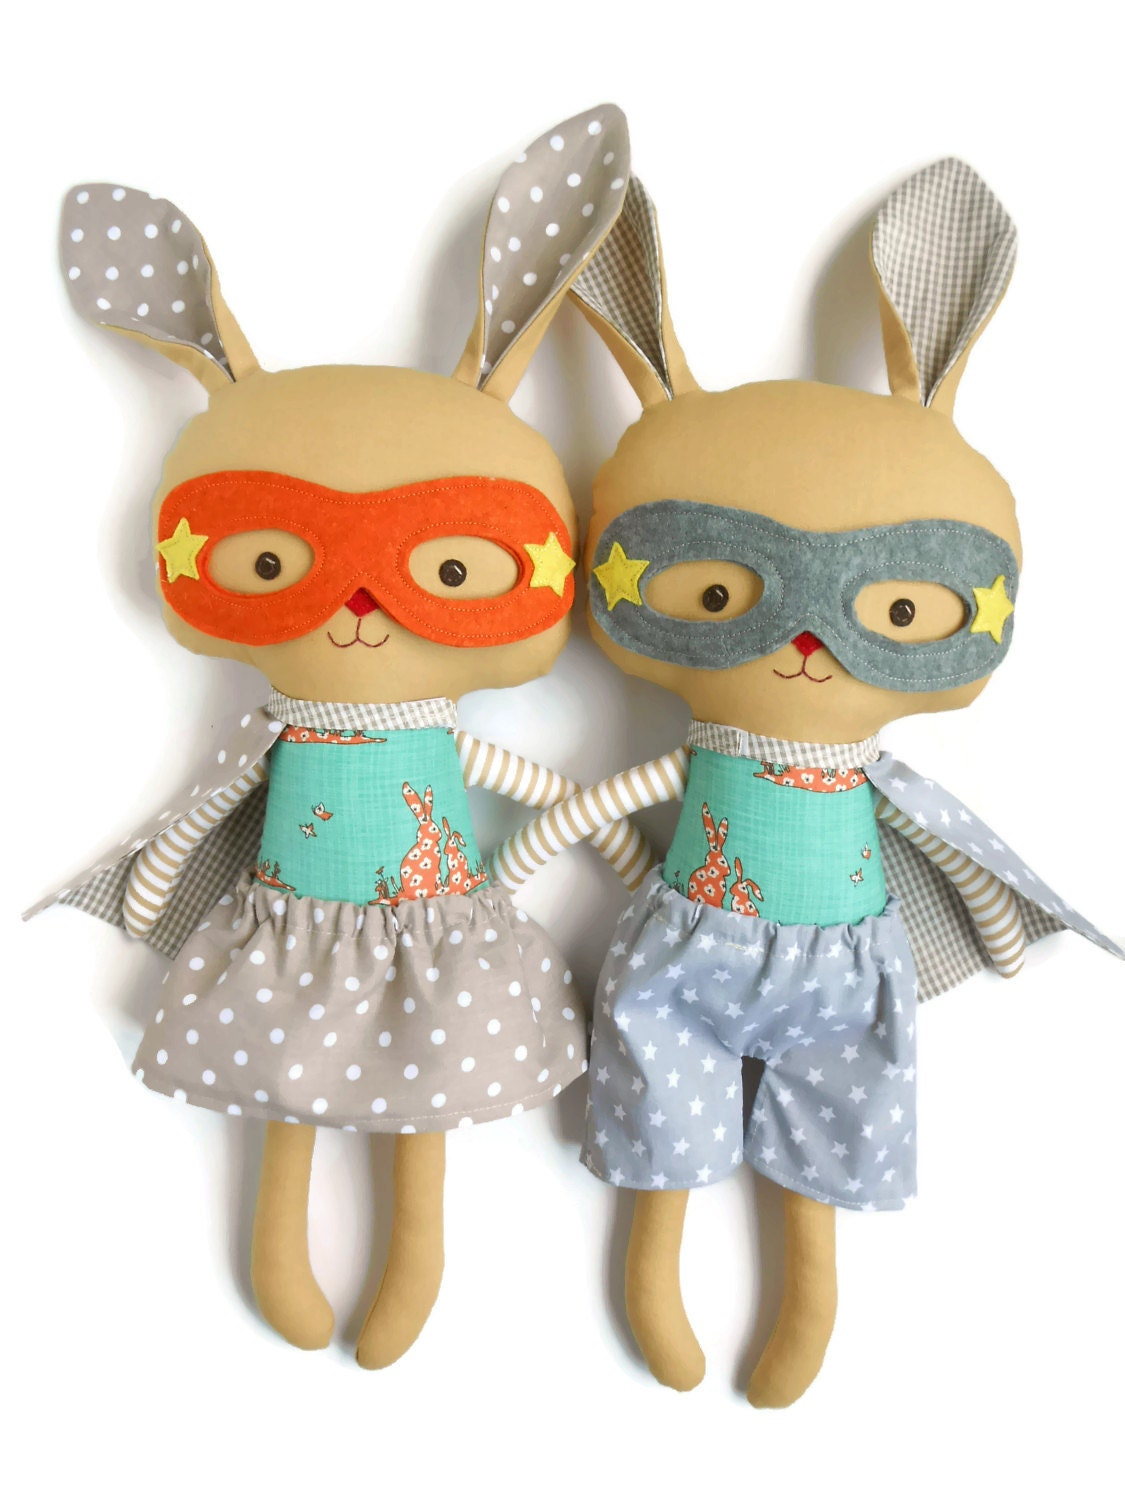 Toys Easter Magazine : Bunny rabbit toy easter toys plush superhero by lalobastudio